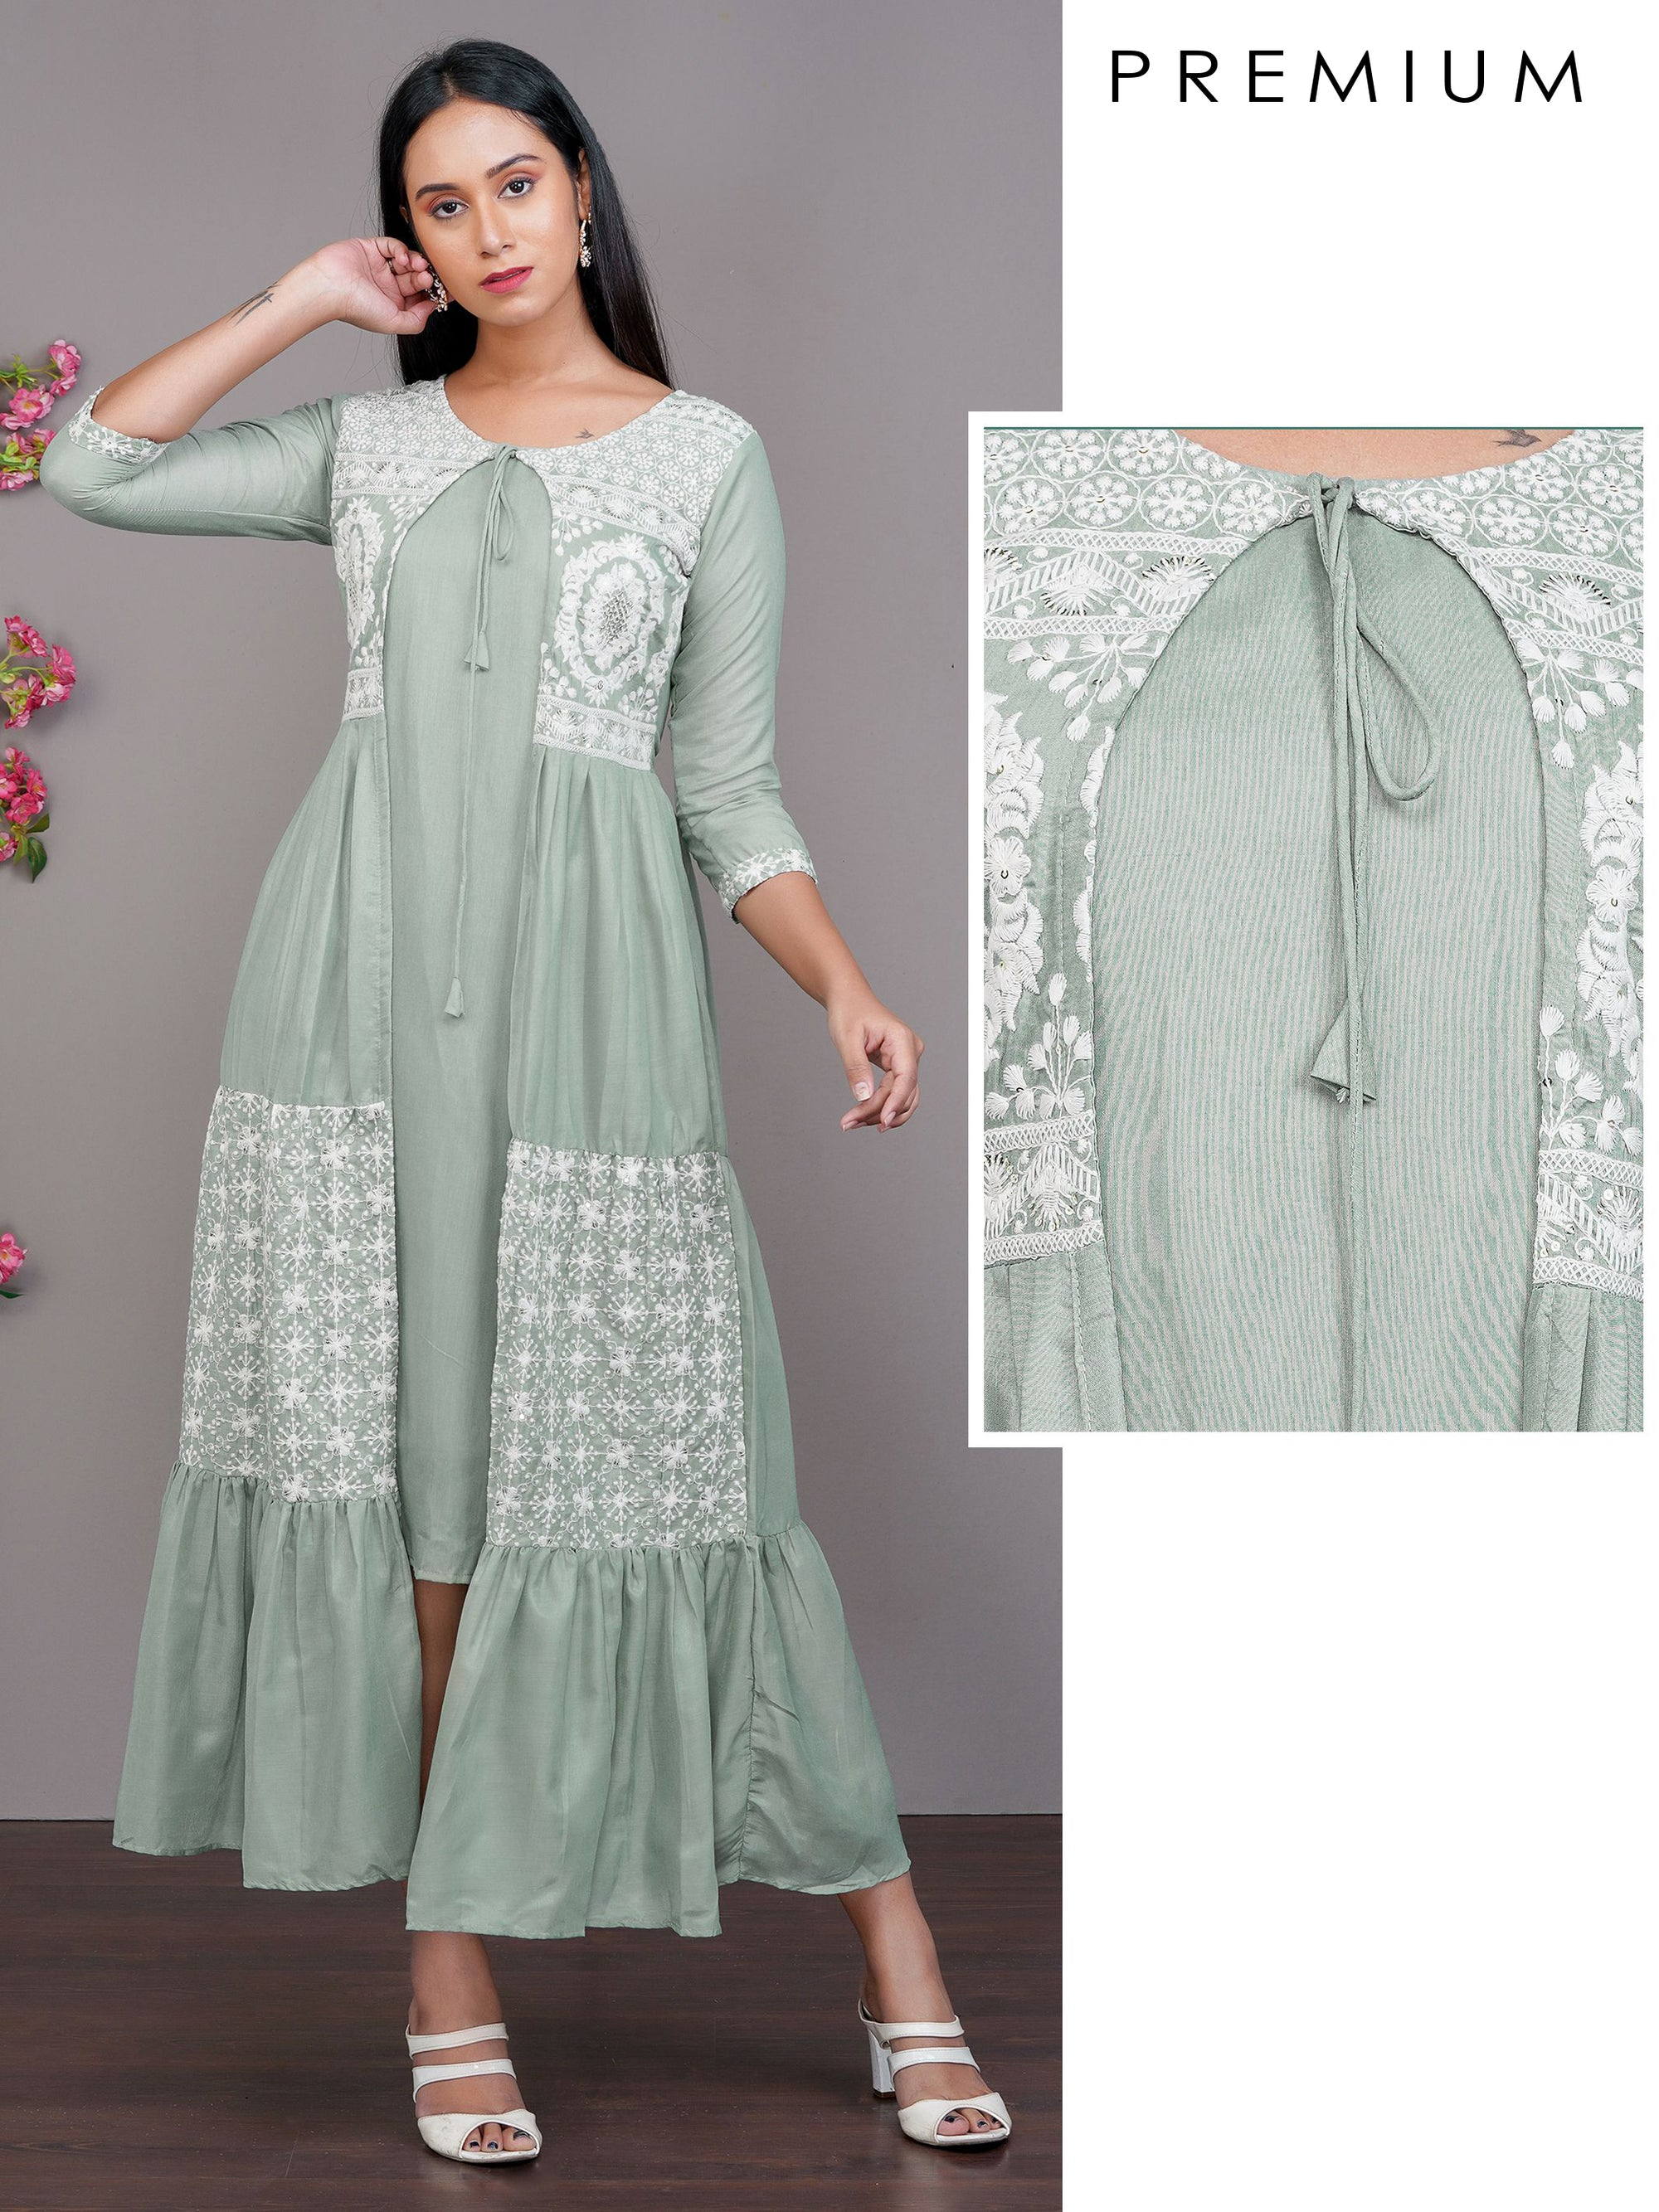 Solid Maxi Attached with Floral Chikankari Embroidered Jacket  – Mint Green